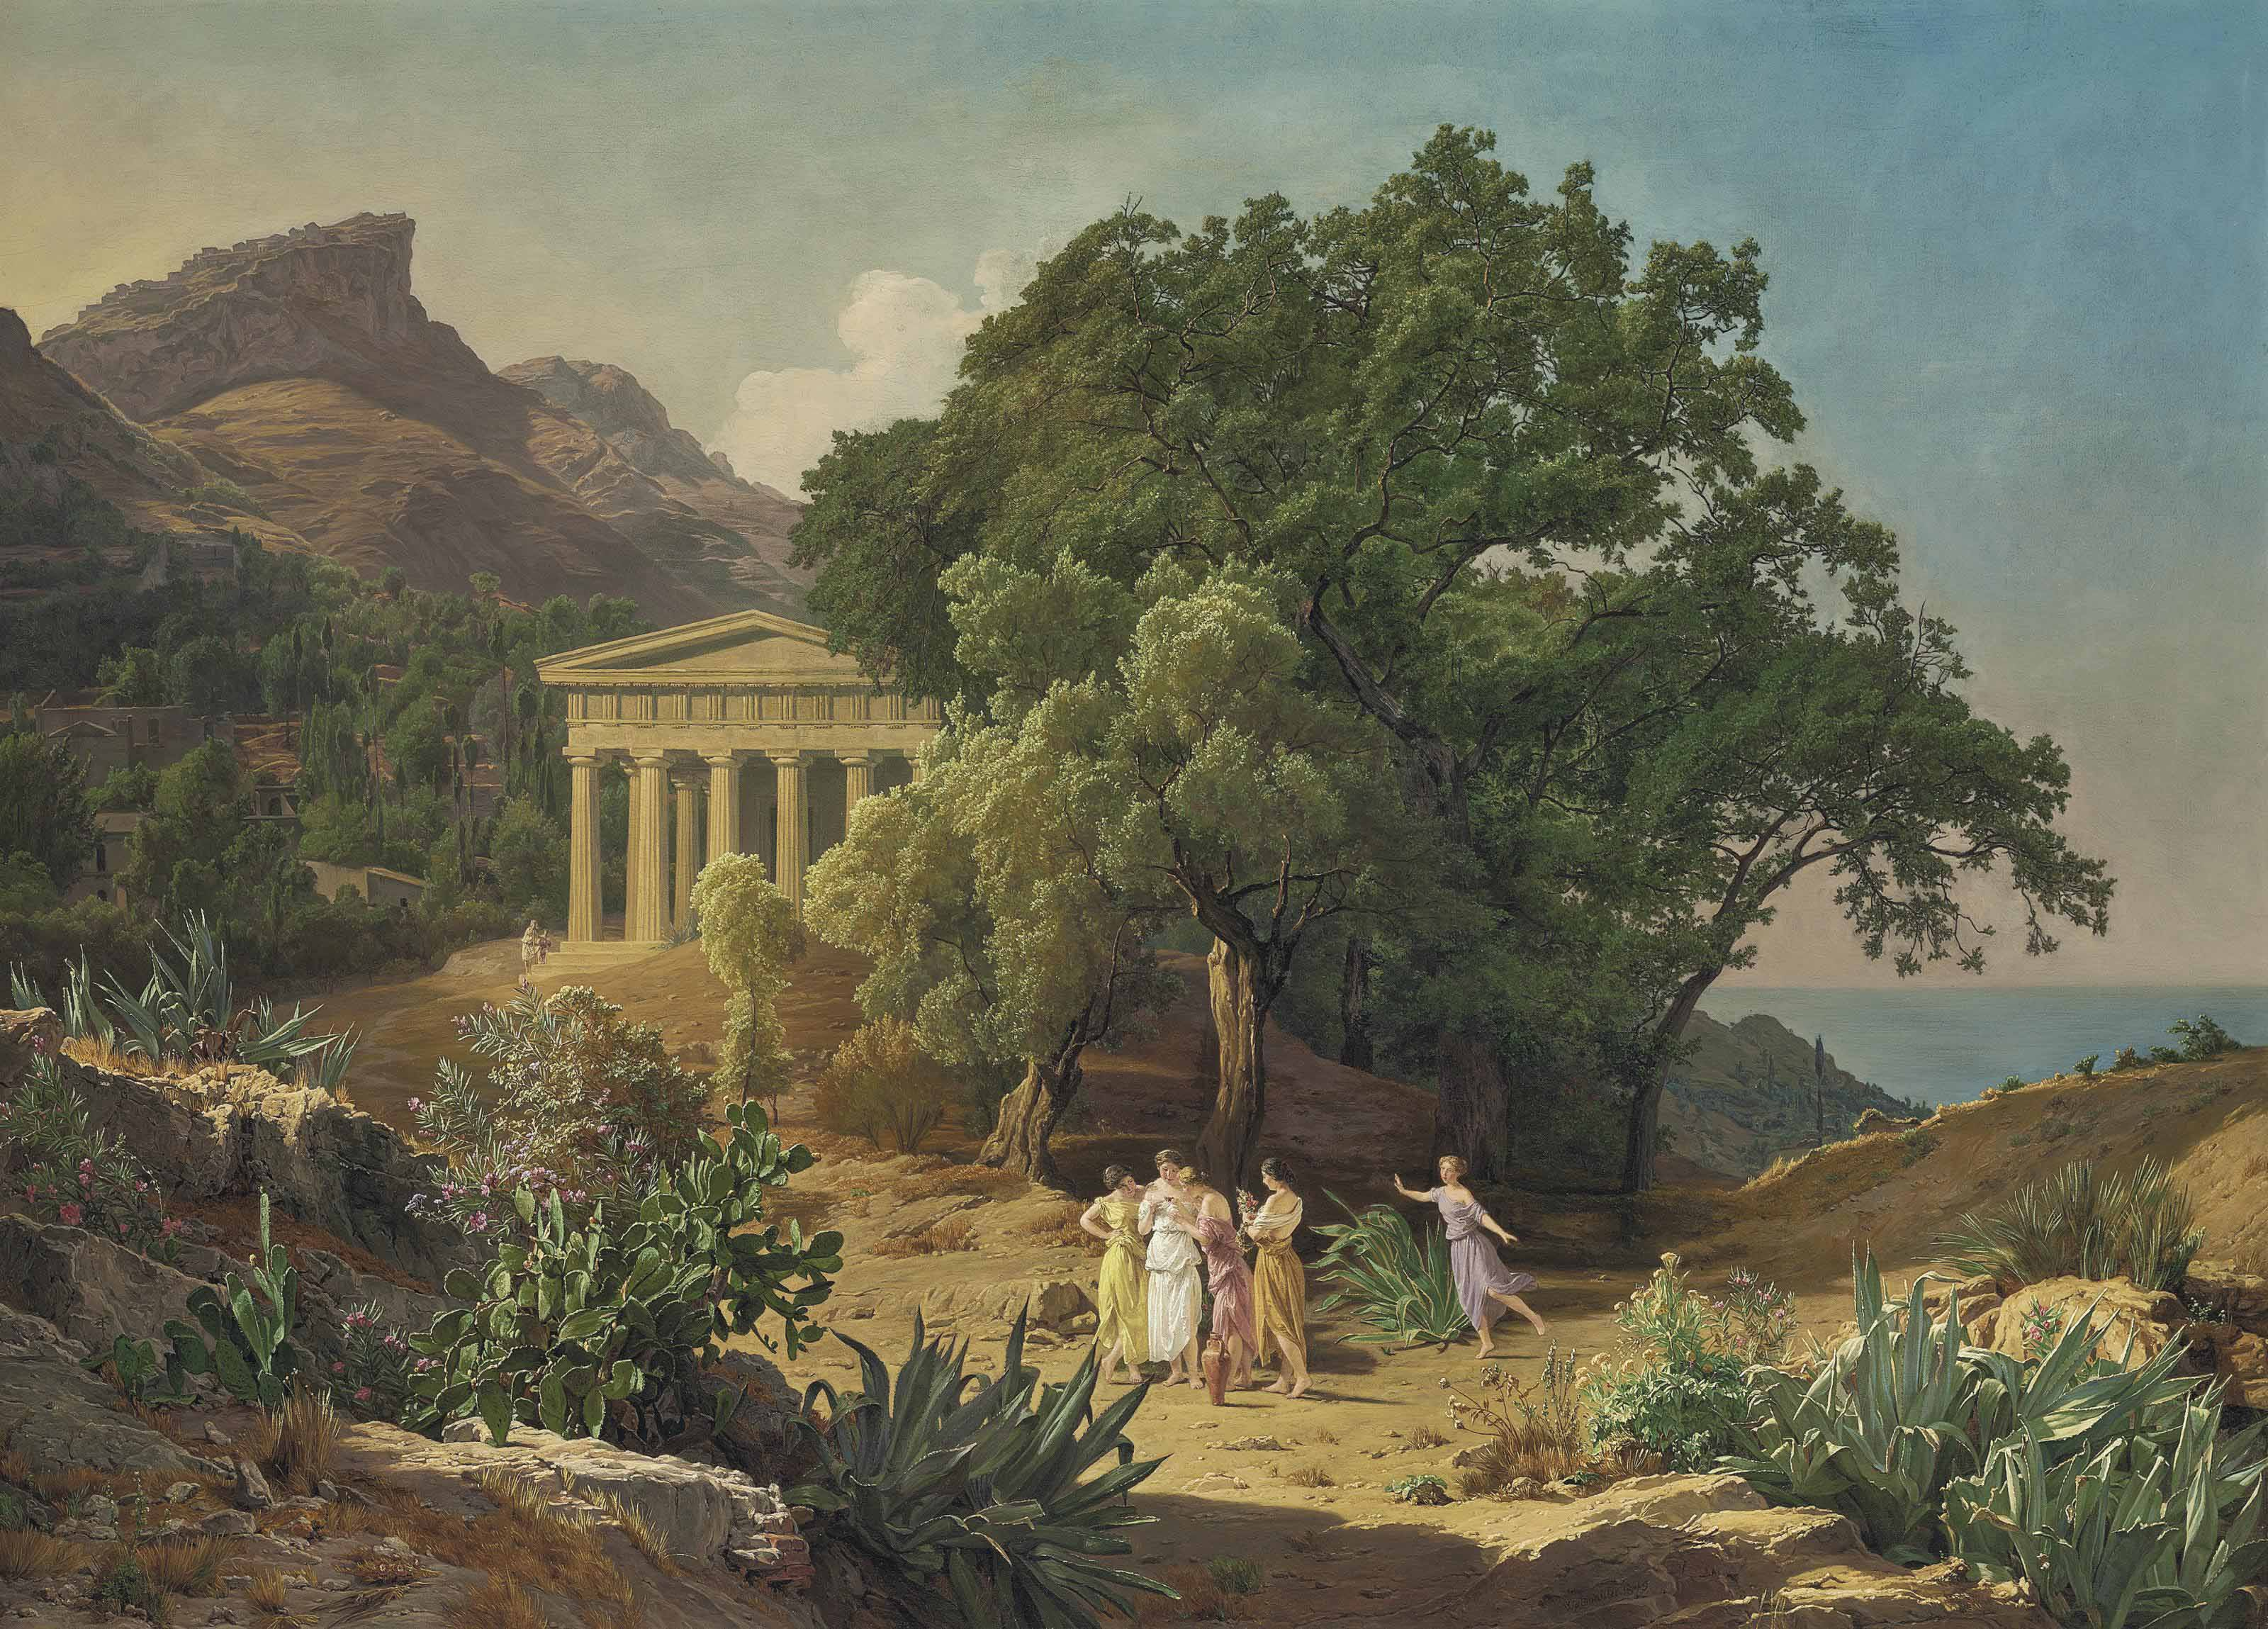 A Doric temple in Sicily with Castelmola and Taormina beyond